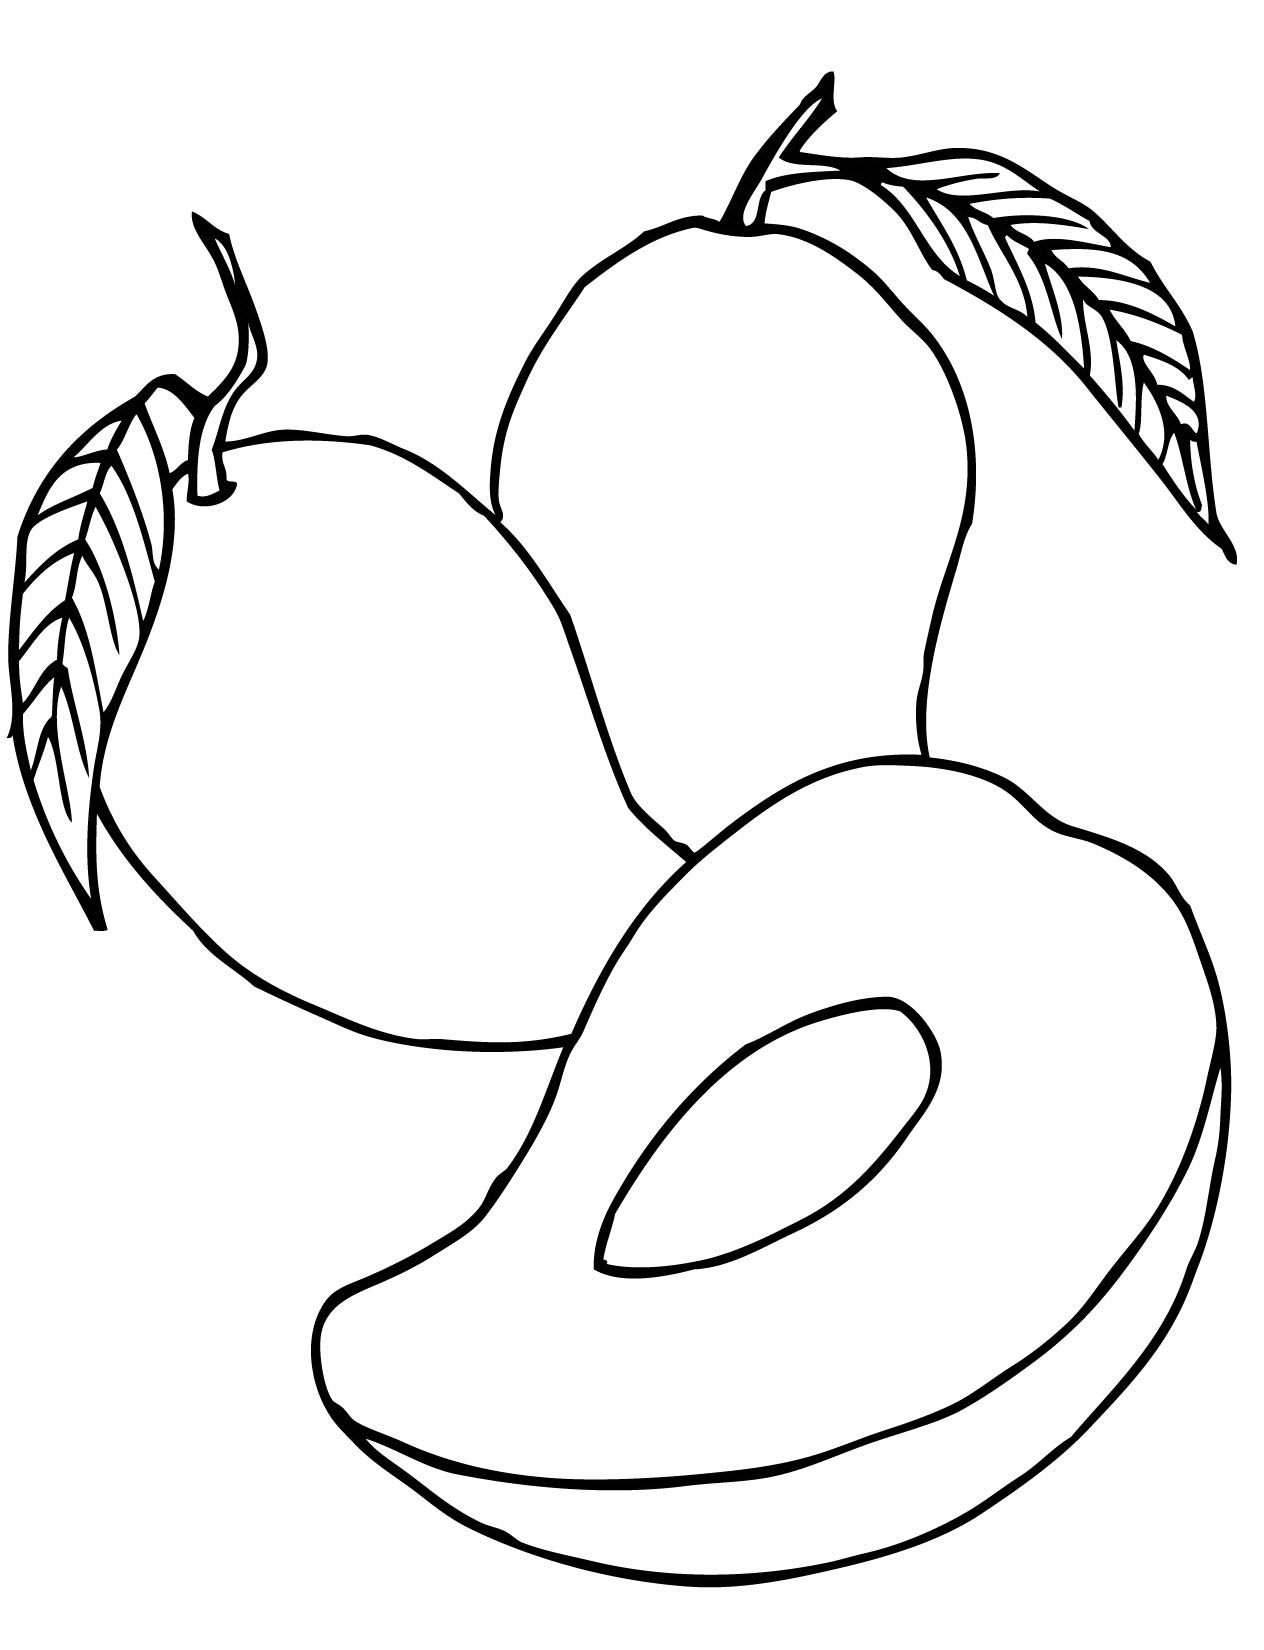 mango coloring pages - photo#21